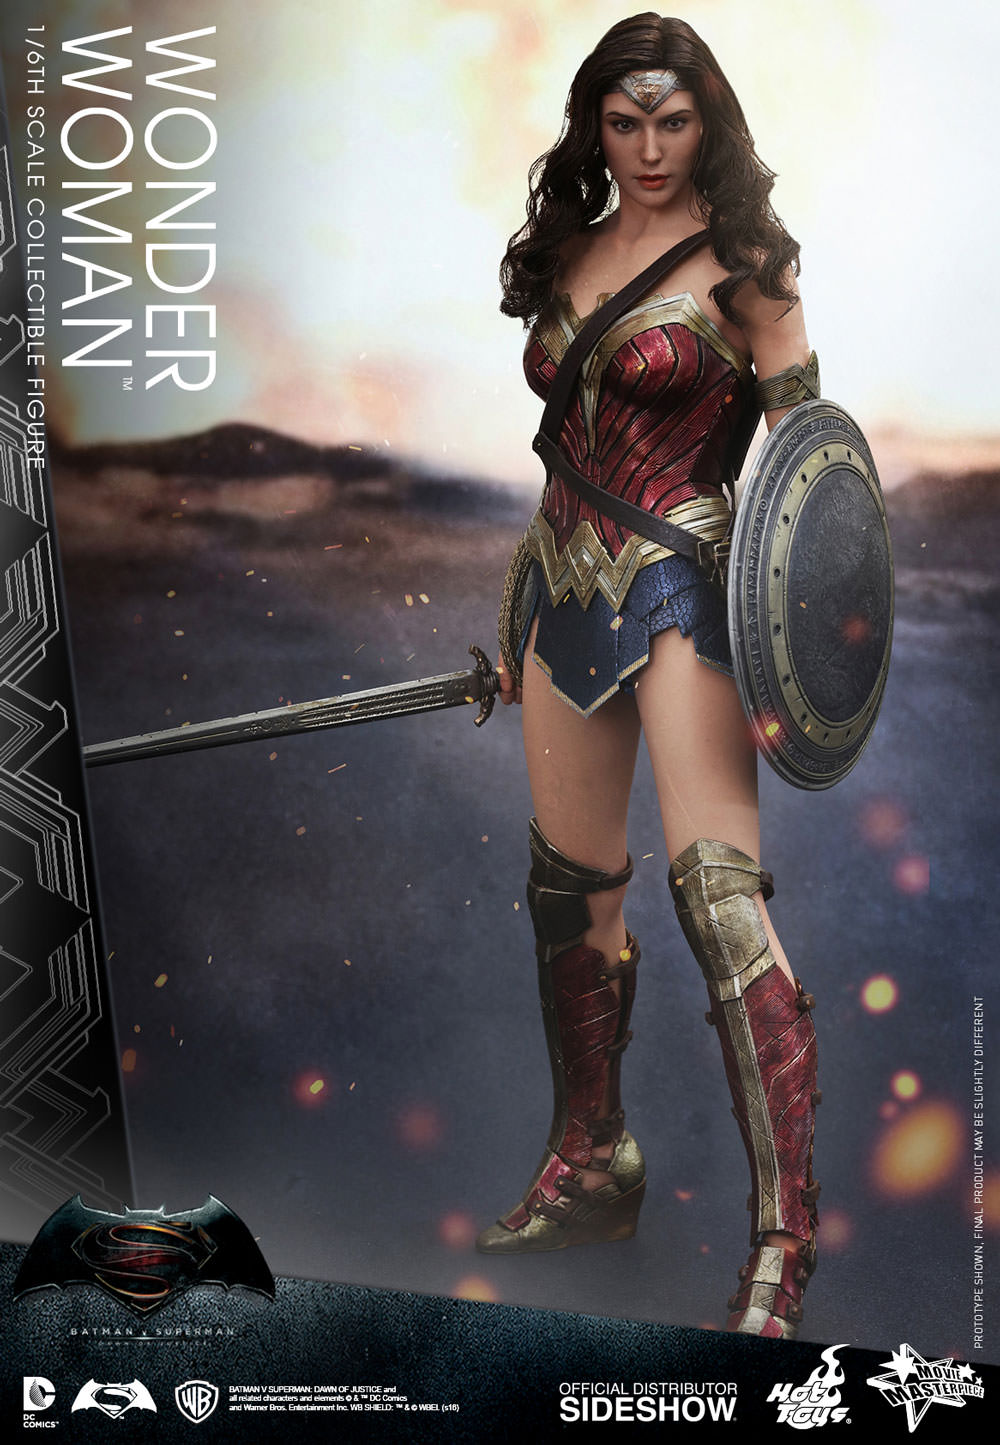 Wonder Woman Sixth Scale Figure by Hot Toys Dawn of Justice